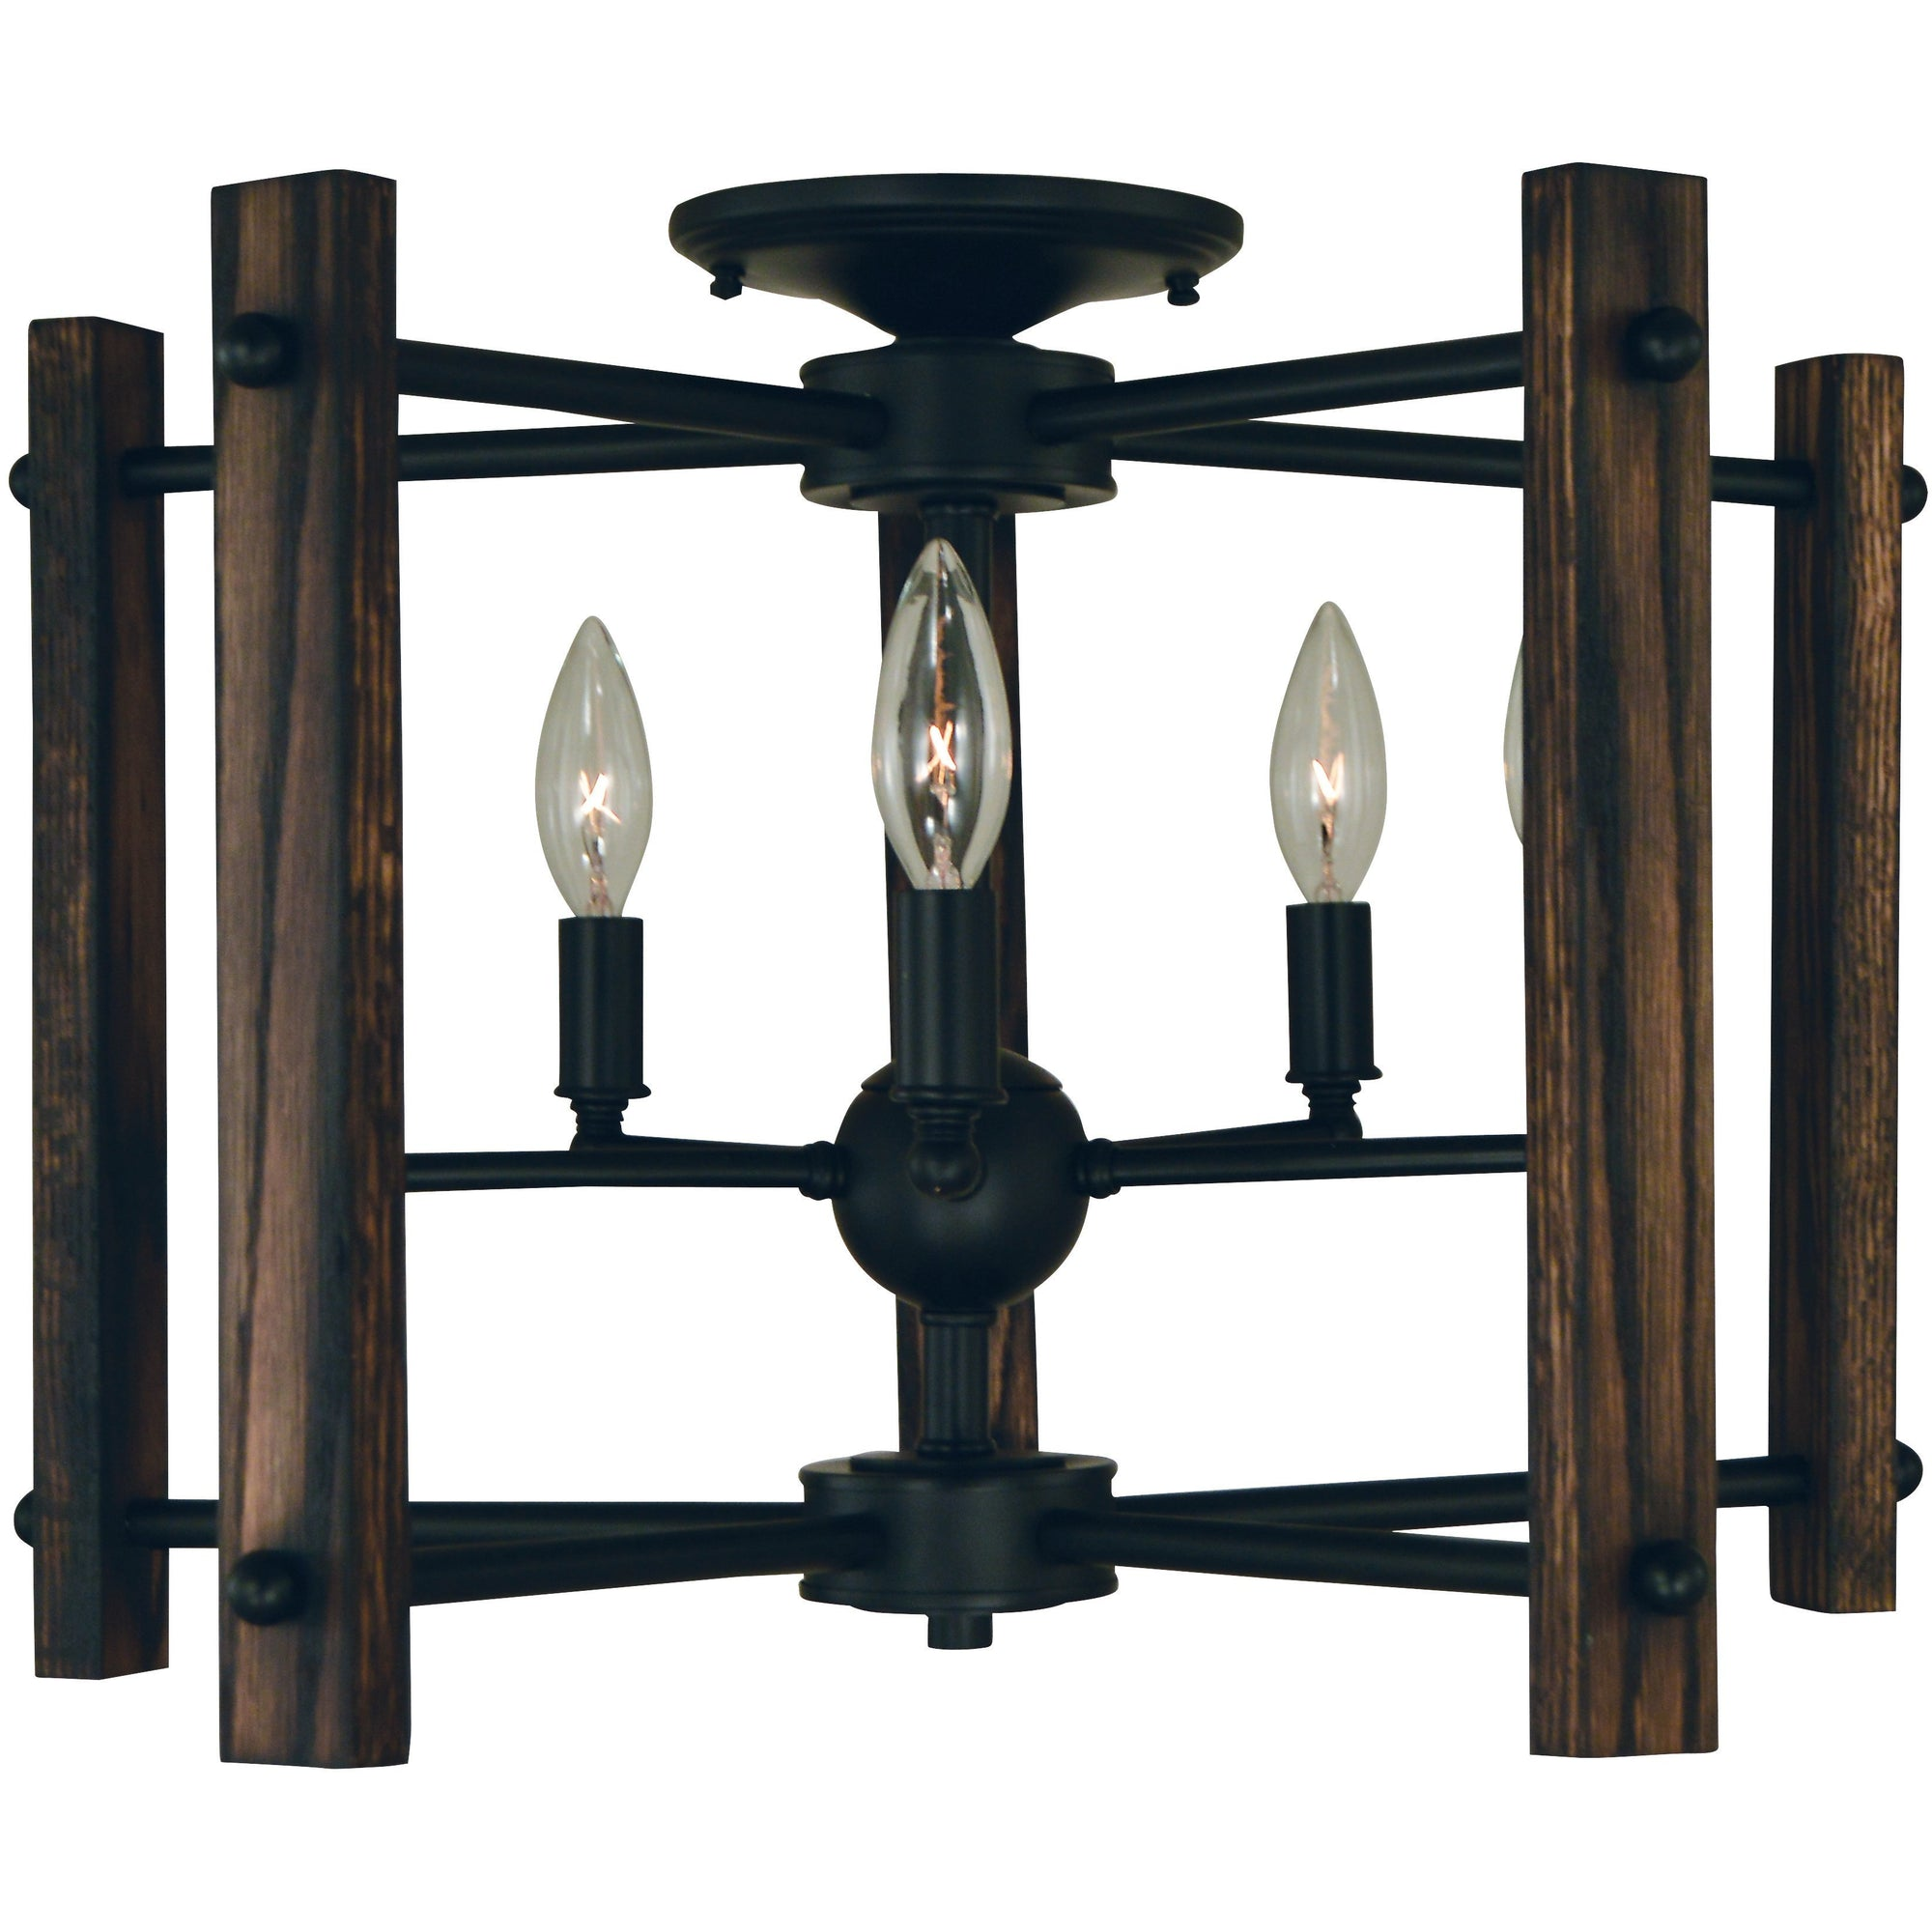 Framburg Flush & Semi Flush Mounts Matte Black 5-Light Matte Black Modern Farmhouse Flush / Semi-Flush Chandelier by Framburg 5401